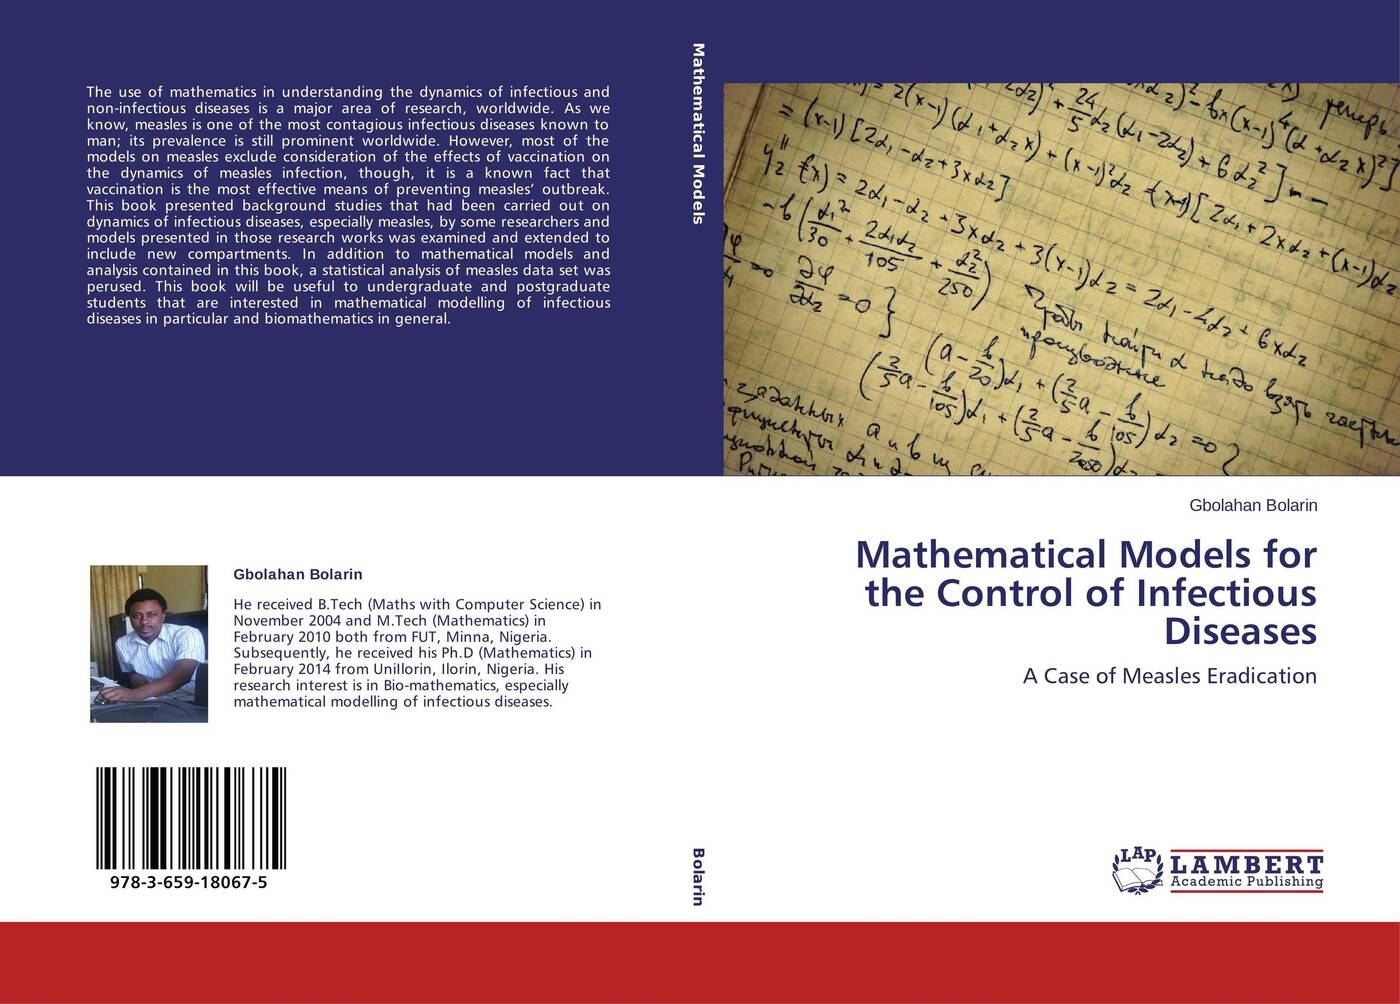 Gbolahan Bolarin Mathematical Models for the Control of Infectious Diseases r donati mathematical fundamentals of trajectory dynamics